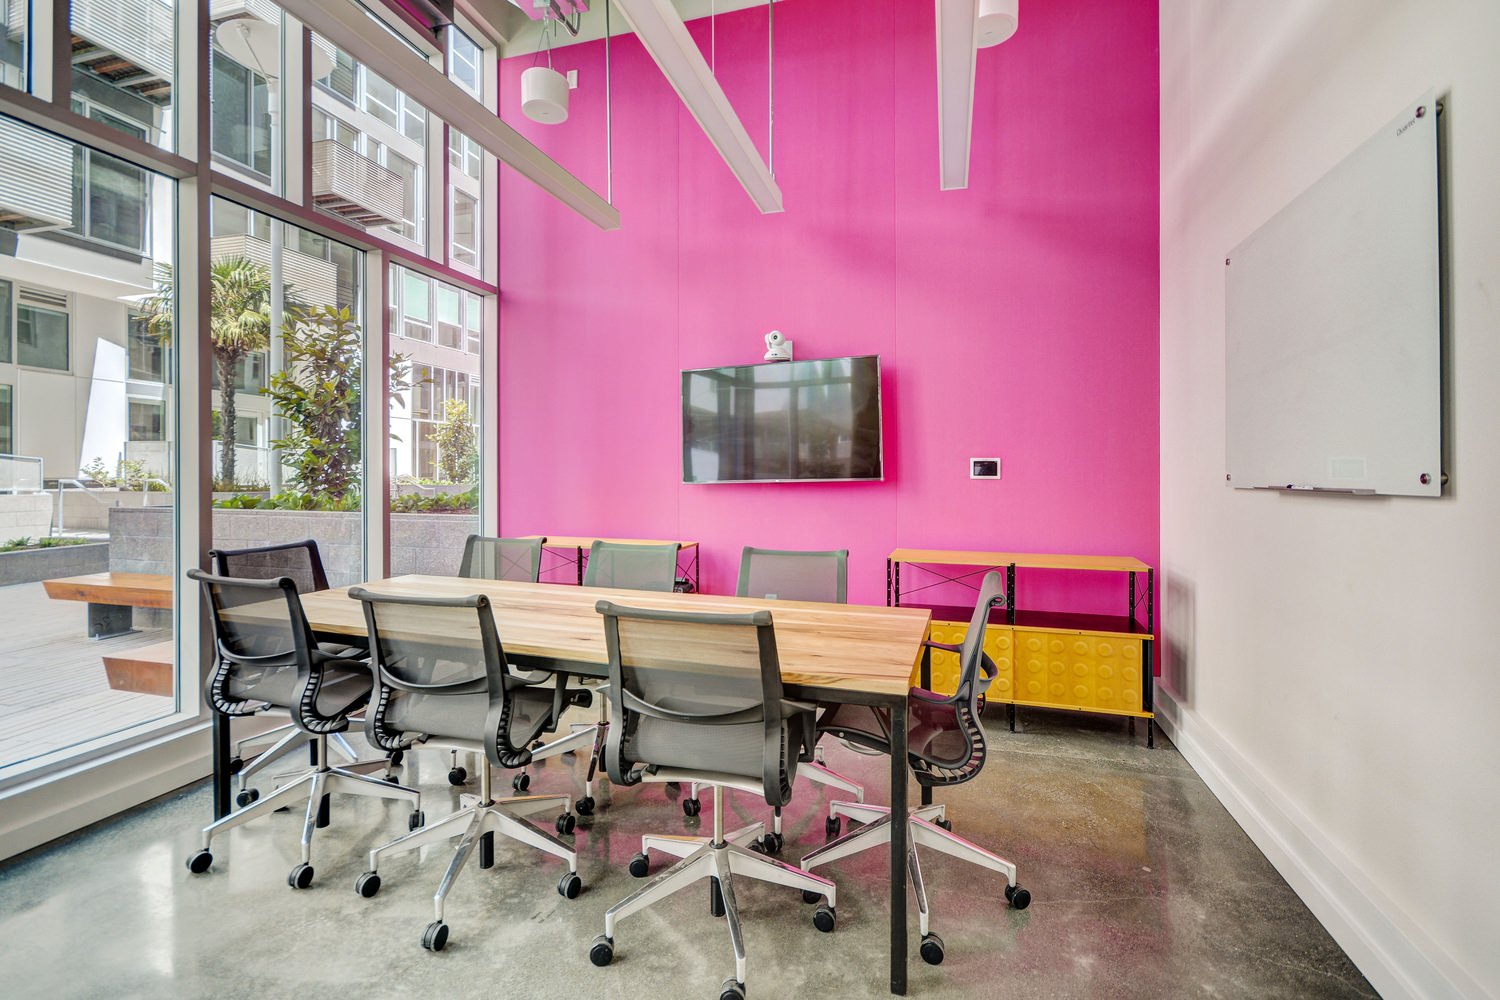 An office with a long table that is surrounded by chairs and next to a pink wall.